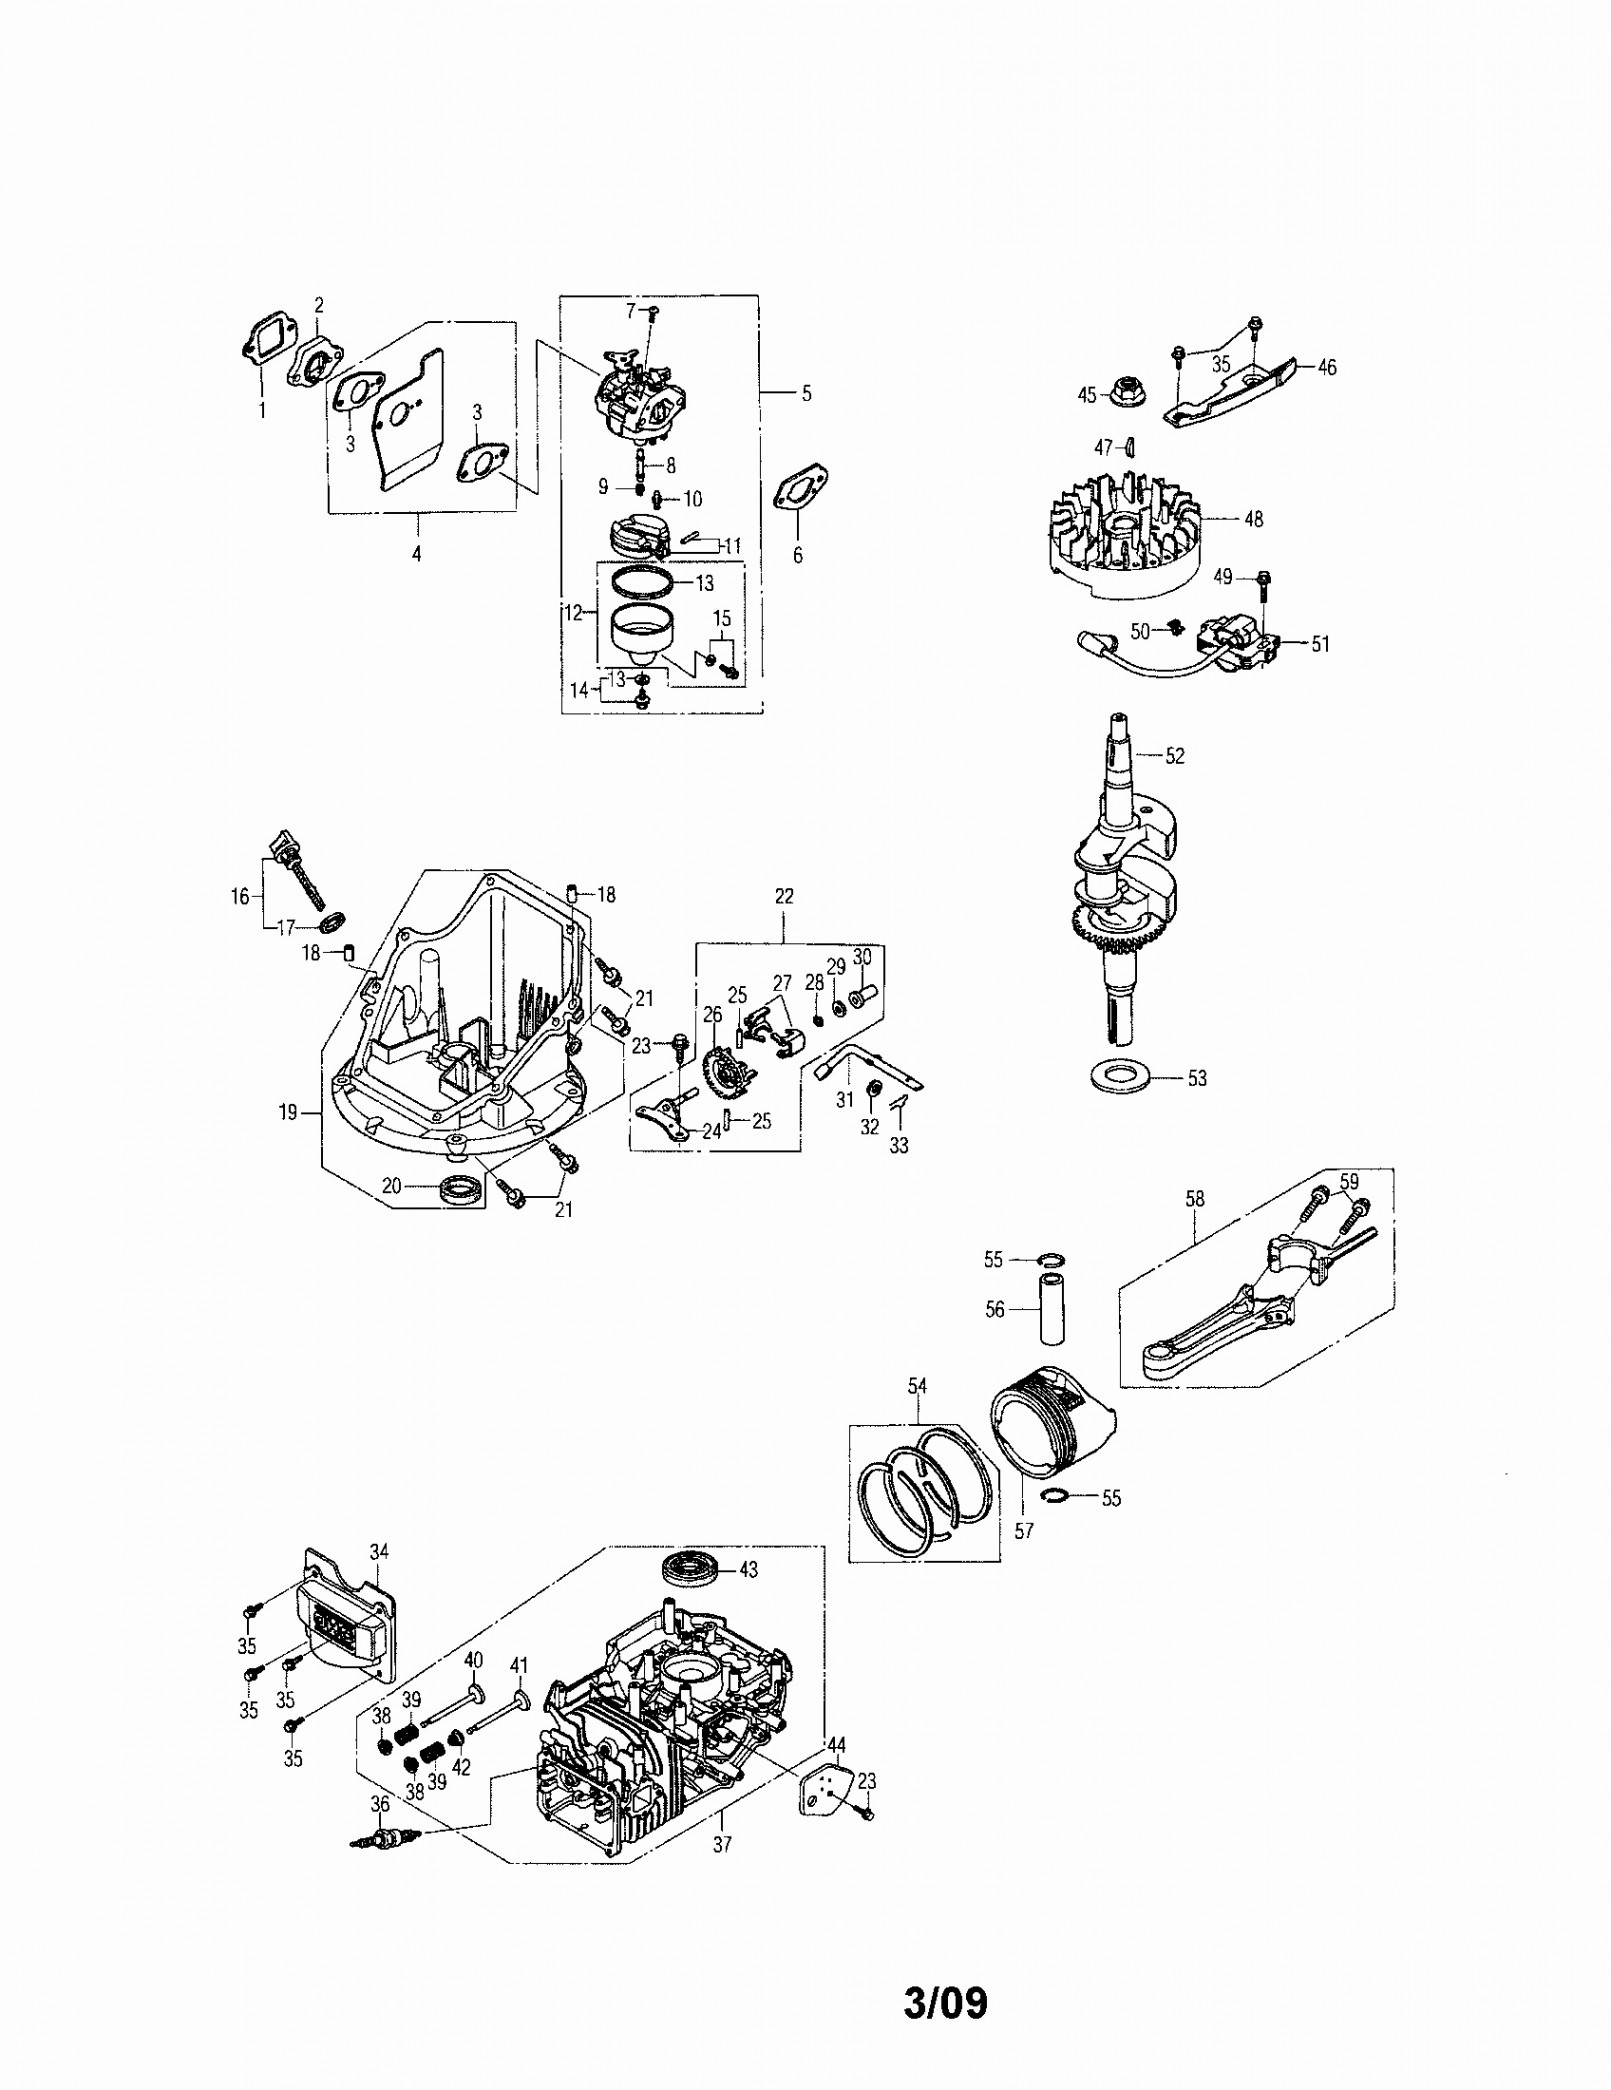 Honda Small Engine Carburetor Diagram Honda Gcv160 Carburetor Diagram – 917 Craftsman 17 Hp 42 Inch Mower Of Honda Small Engine Carburetor Diagram Honda Gcv160 Carburetor Diagram – 917 Craftsman 17 Hp 42 Inch Mower